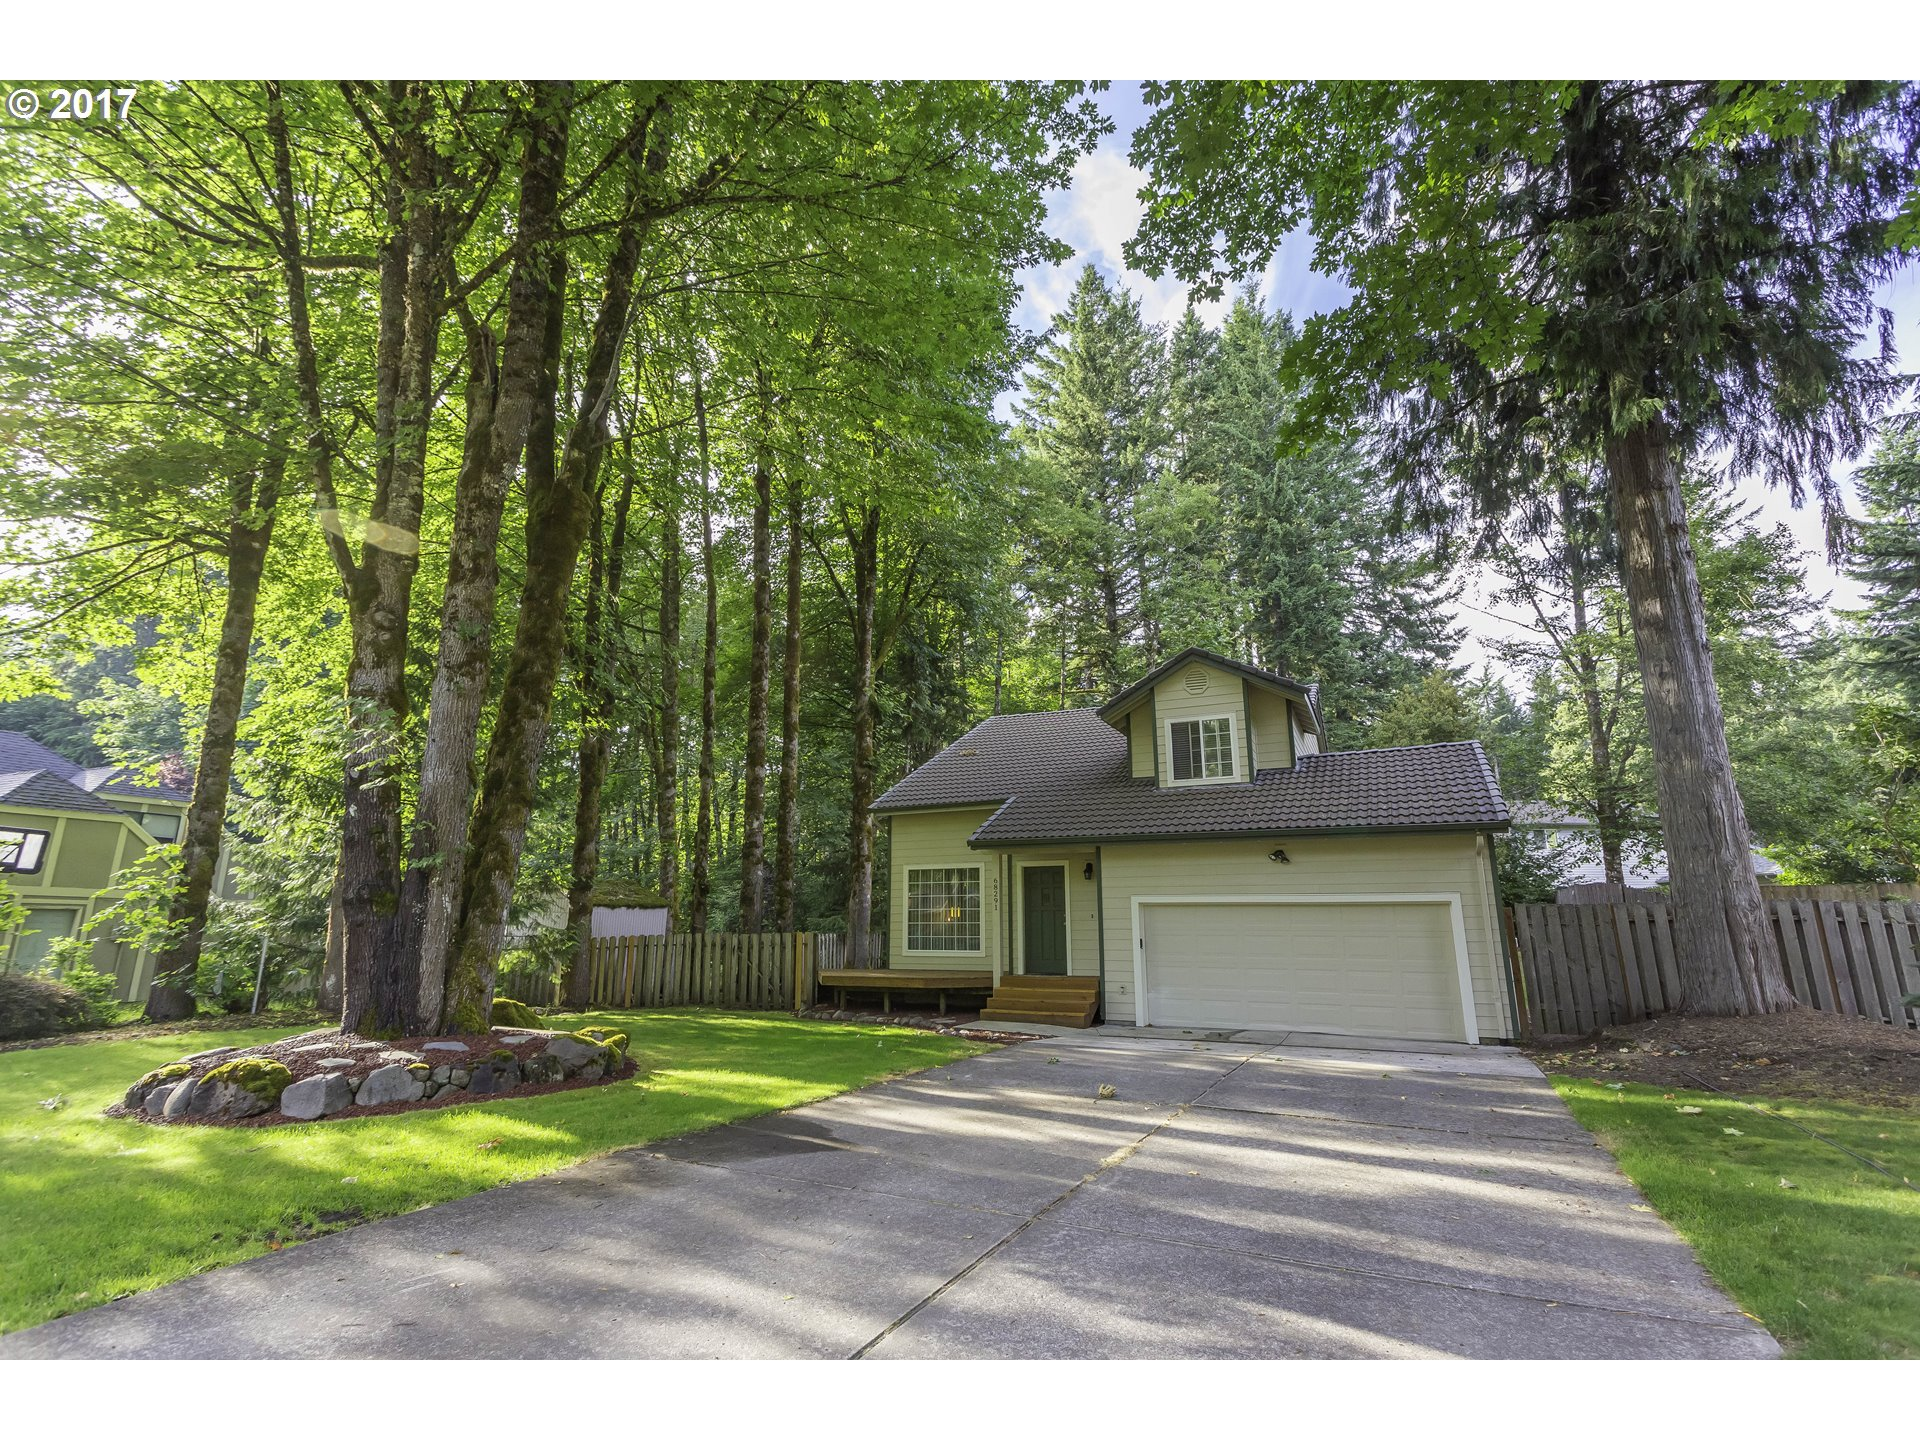 68291 E TWINBERRY LOOP, Welches, OR 97067